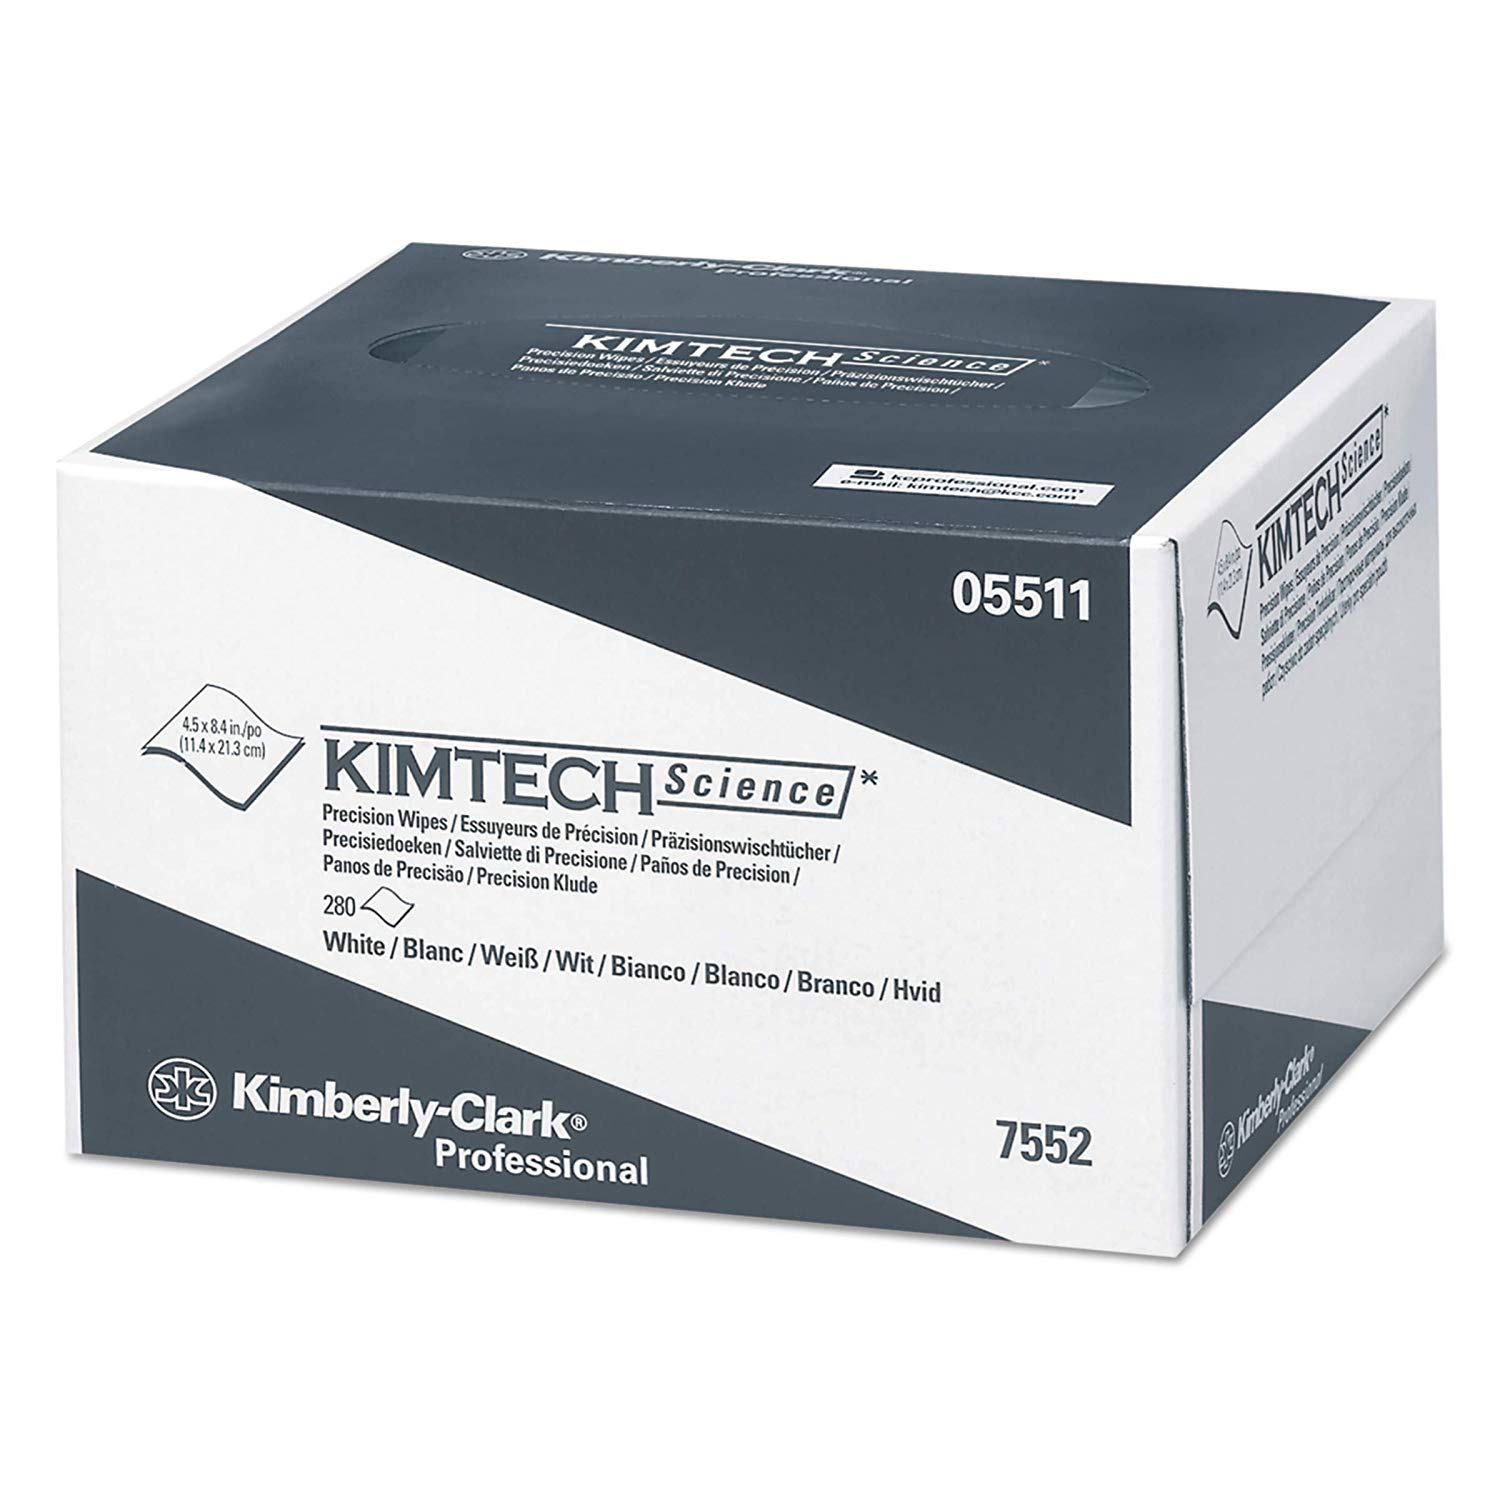 Kimberly Clark - Cleaning Wipes (280/bx)